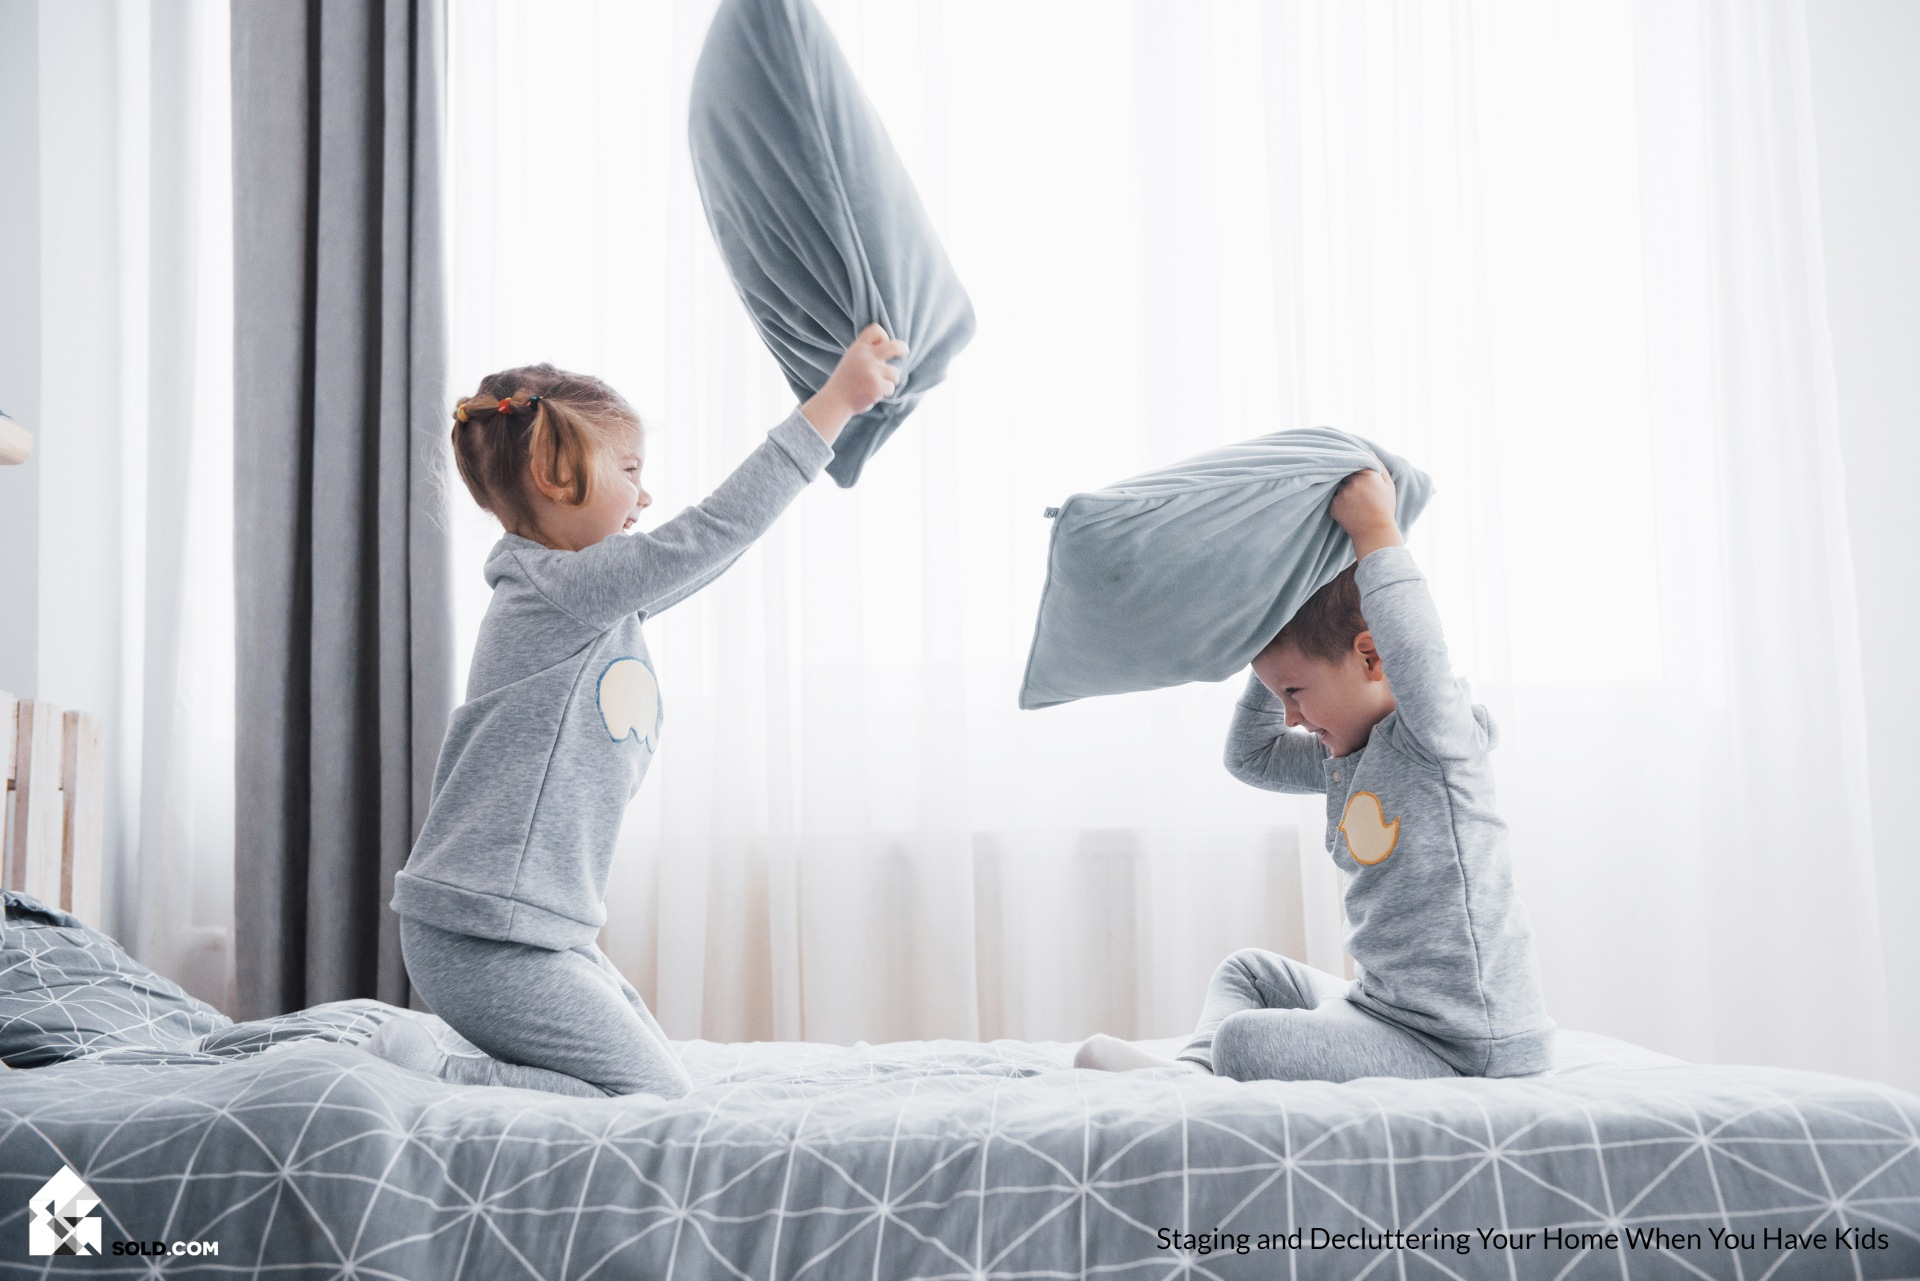 Staging and Decluttering Your Home When You Have Kids